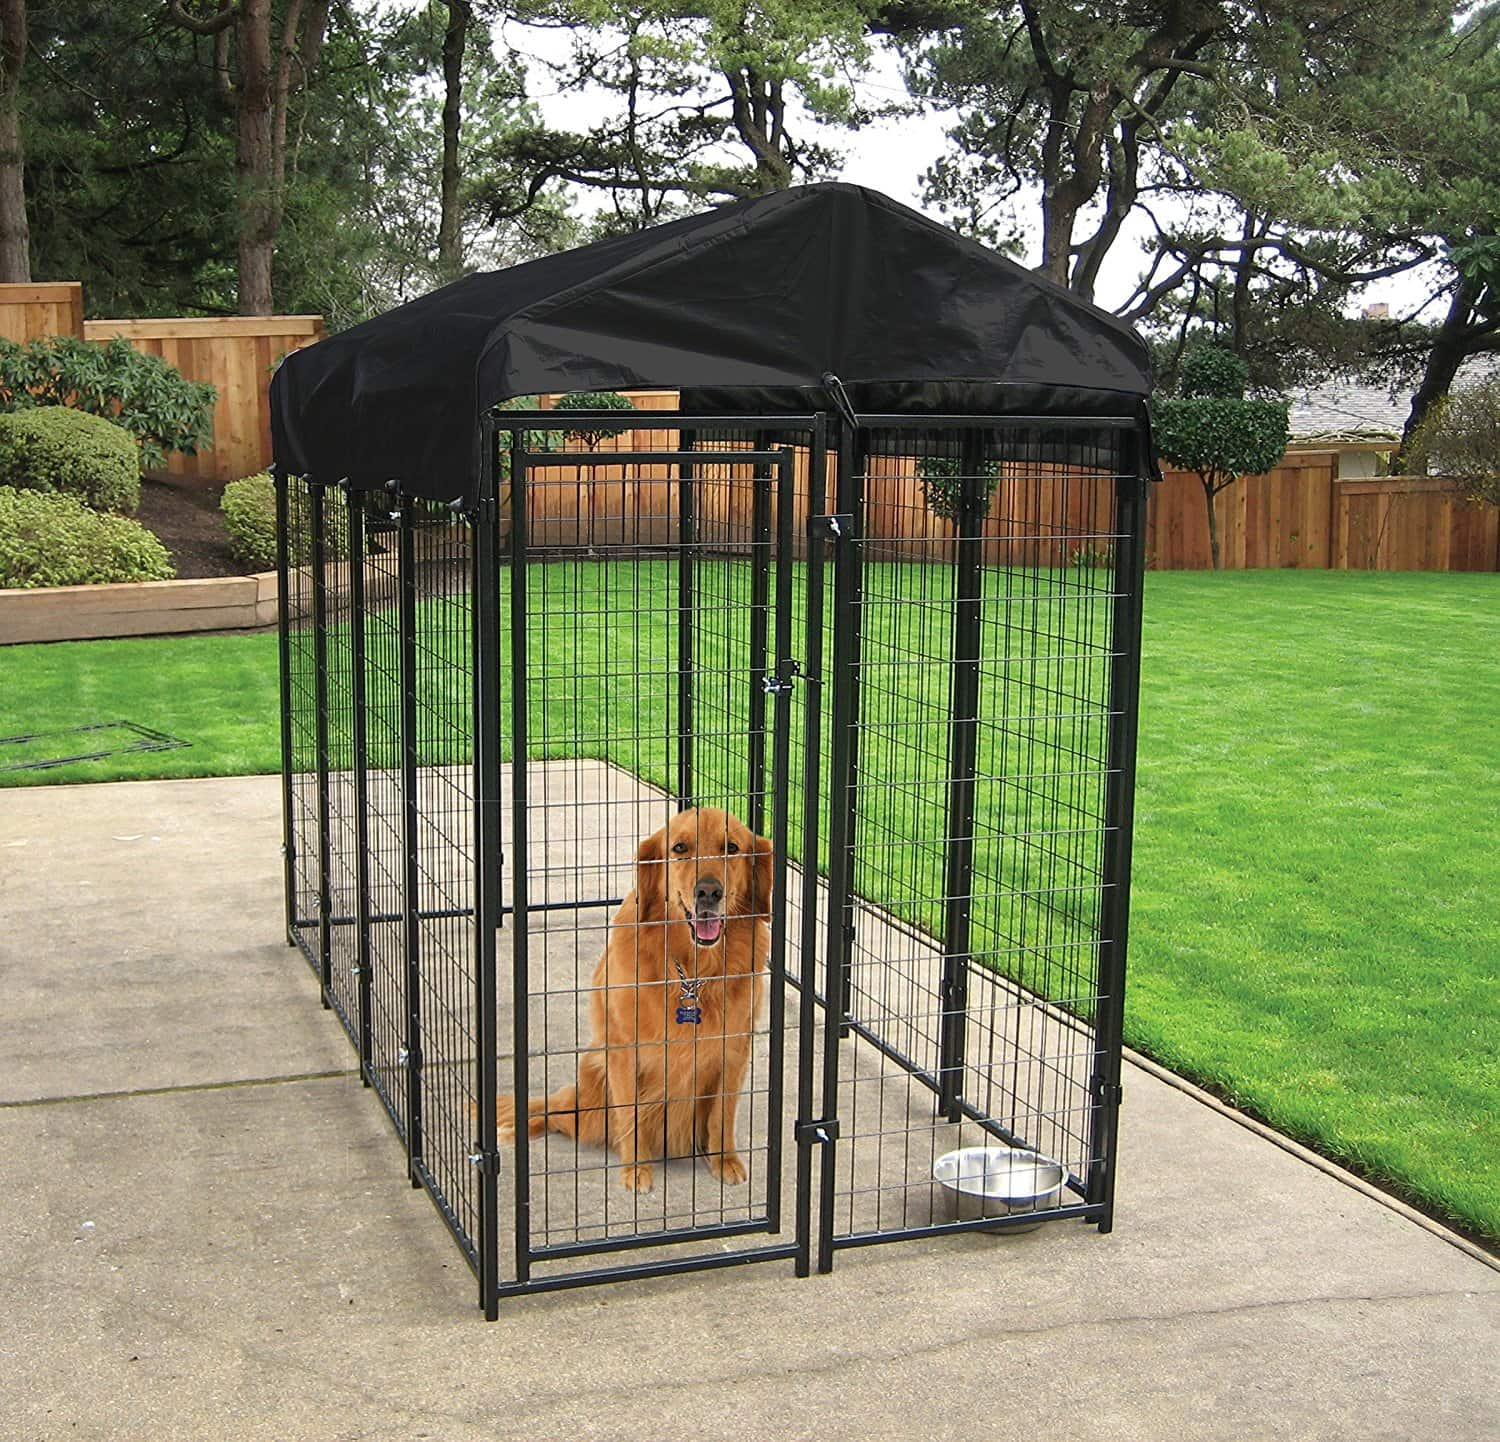 Genial Extra Large Outdoor Dog Pens Heavy Duty With Roof